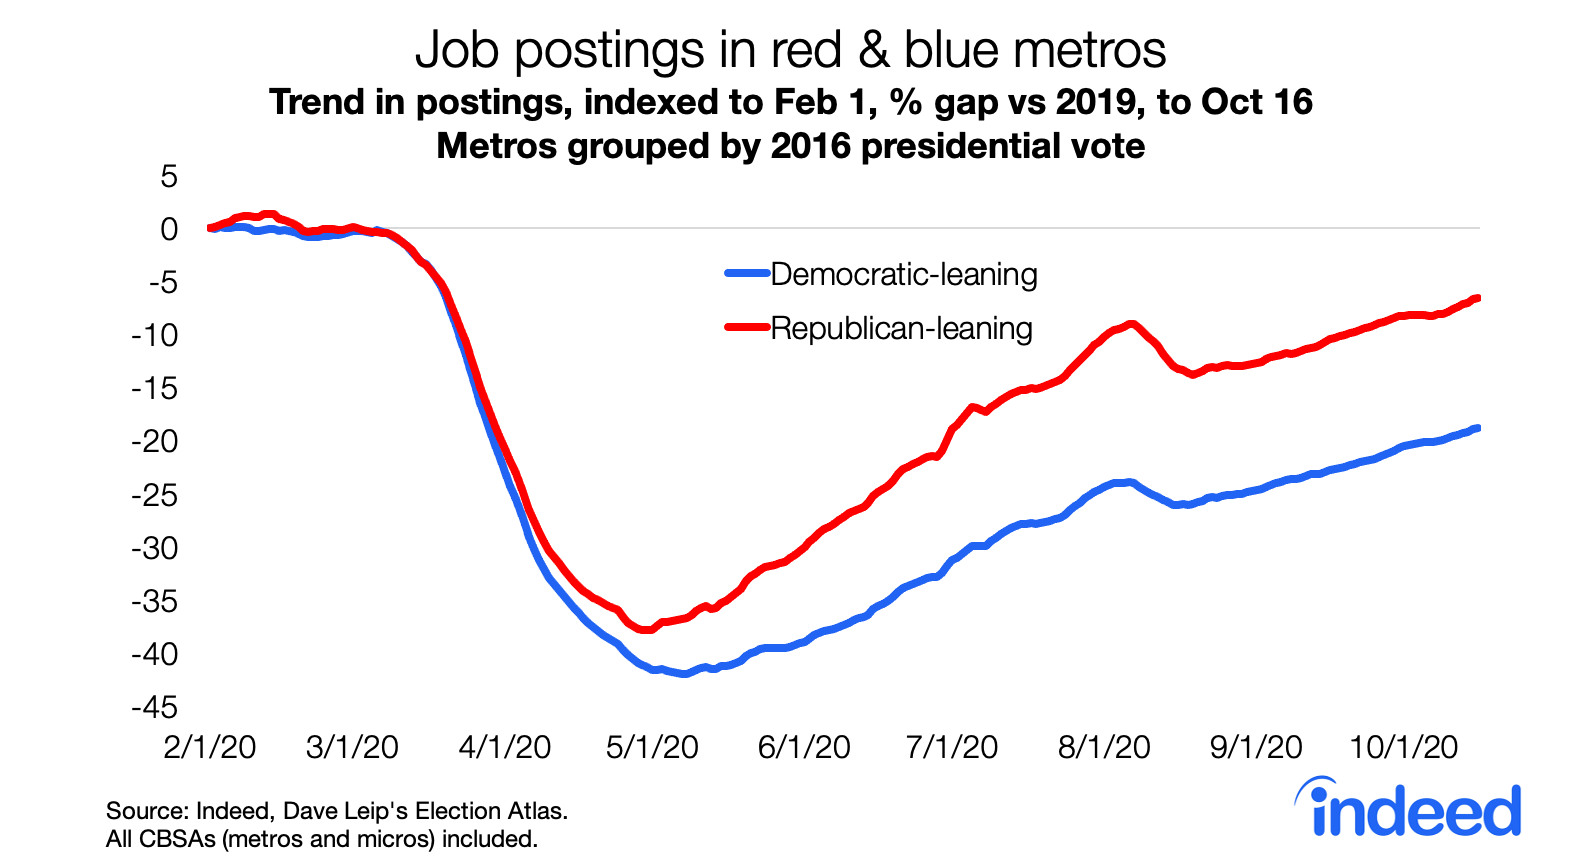 Line graph showing job postings trends in red and blue metros.